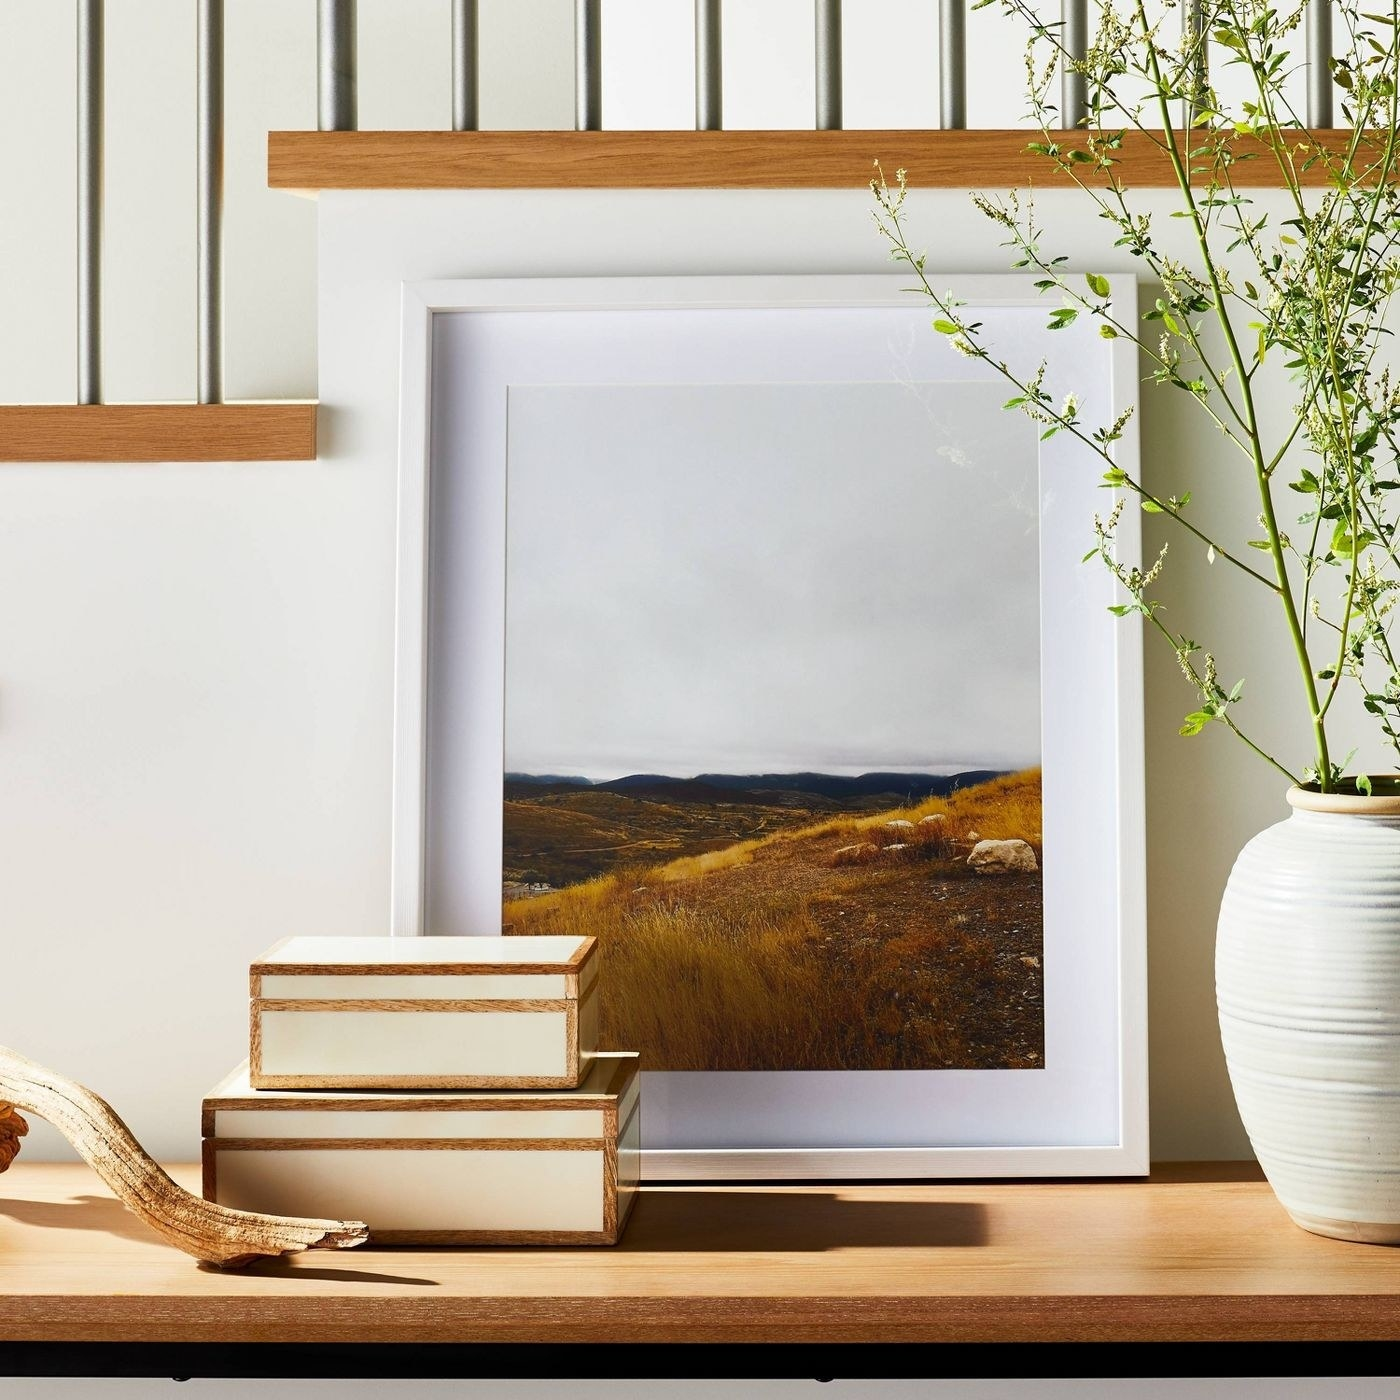 Wood and ivory boxes next to large white picture frame and vase with plant